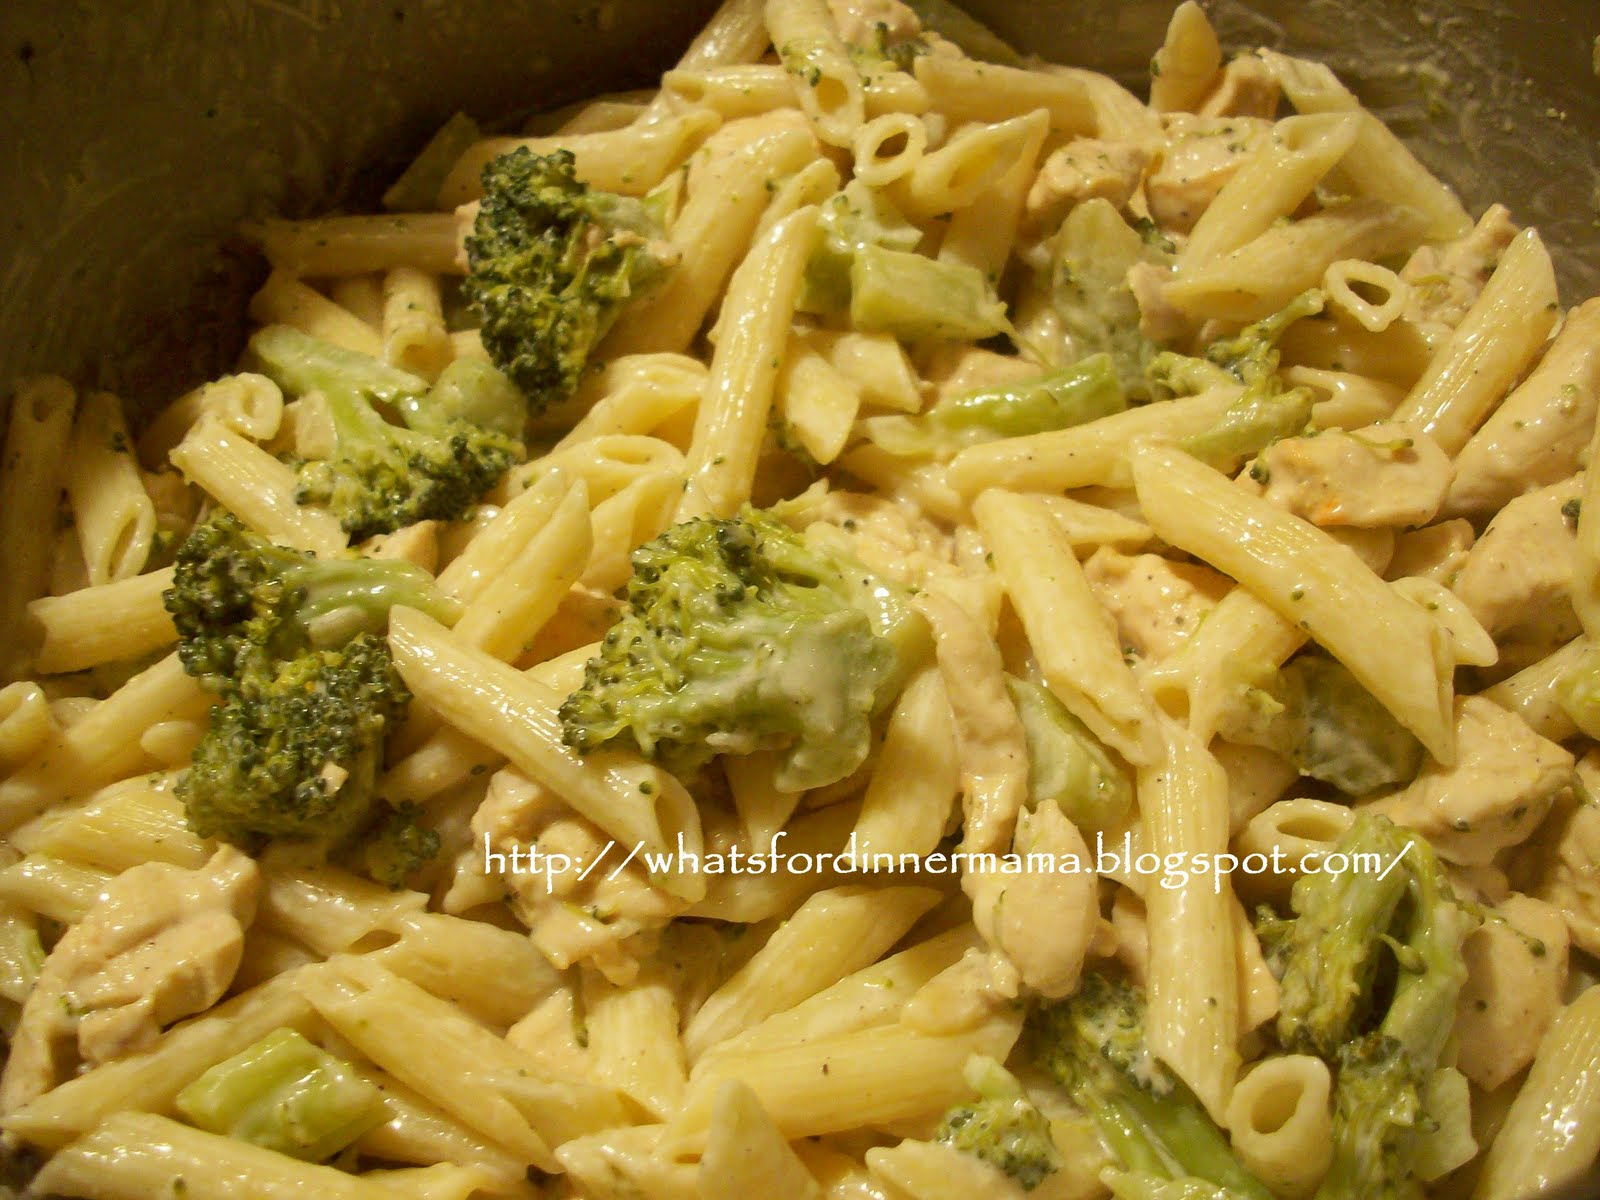 Chicken Penne Pasta With Broccoli